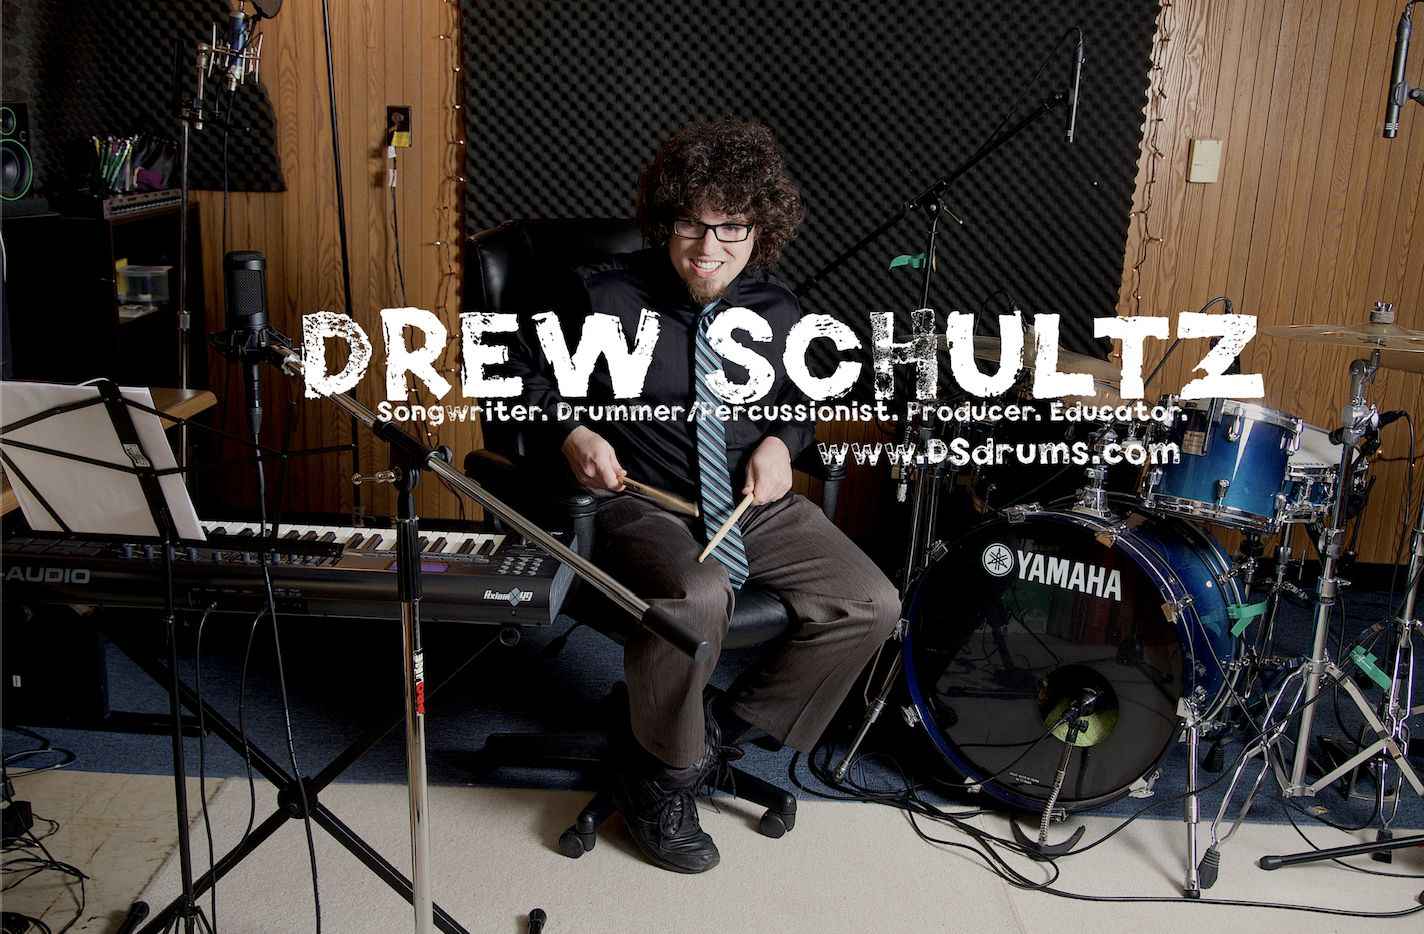 Drew Schultz - Drummer, Percussionist, Songwriter, Producer, Educator